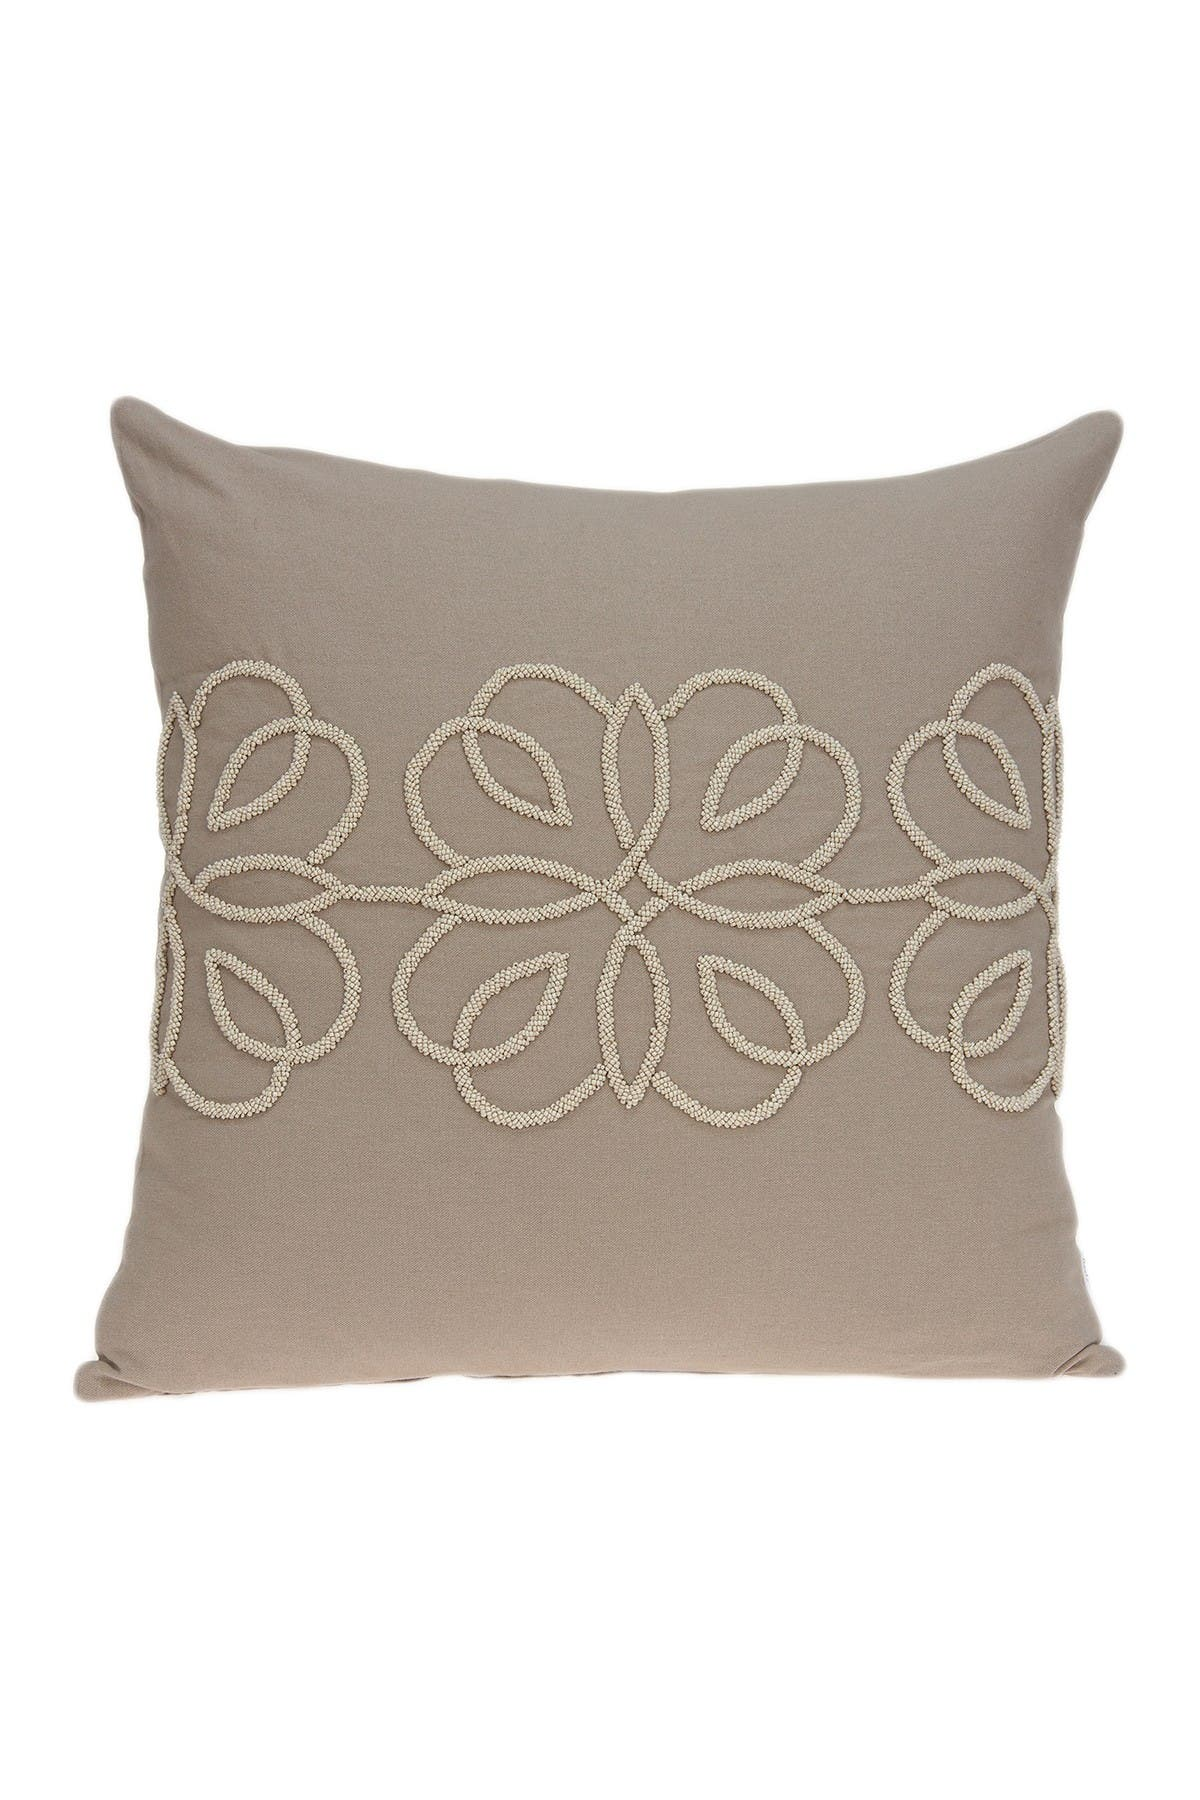 """Image of Parkland Collection Sutra Transitional Pillow - 20"""" x 20"""" - Tan"""